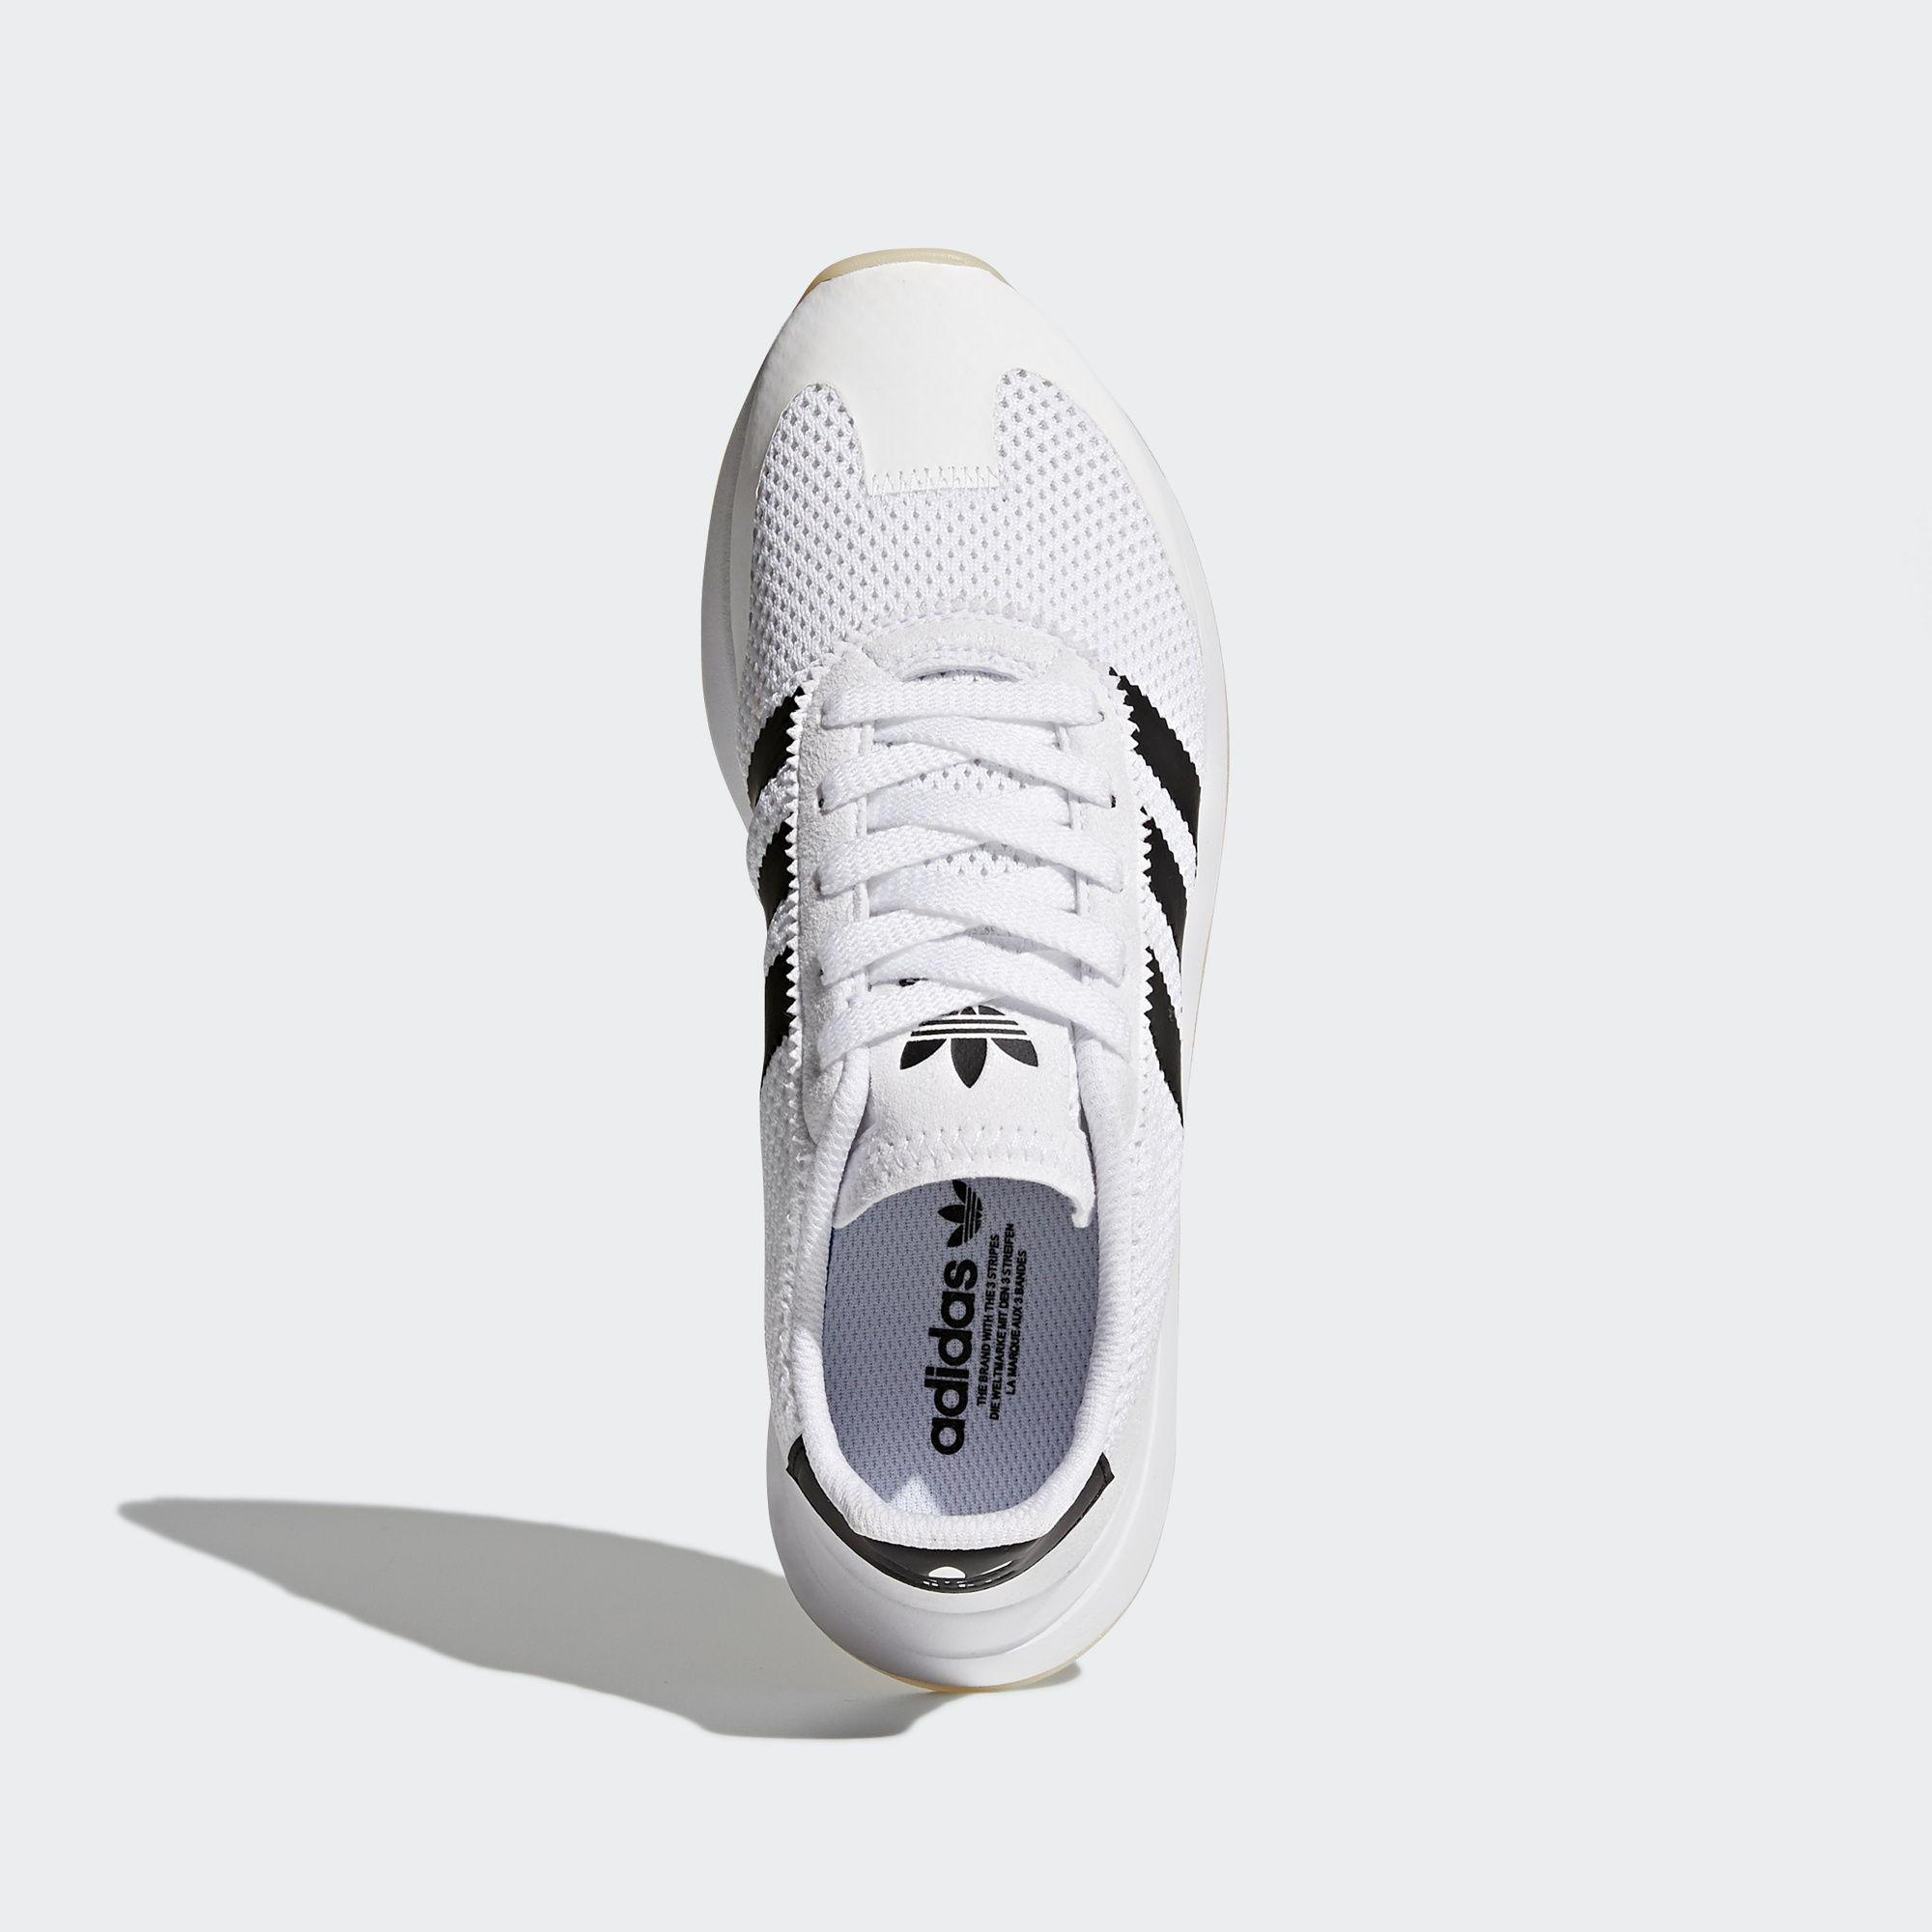 adidas Flashrunner Shoes in White Lyst